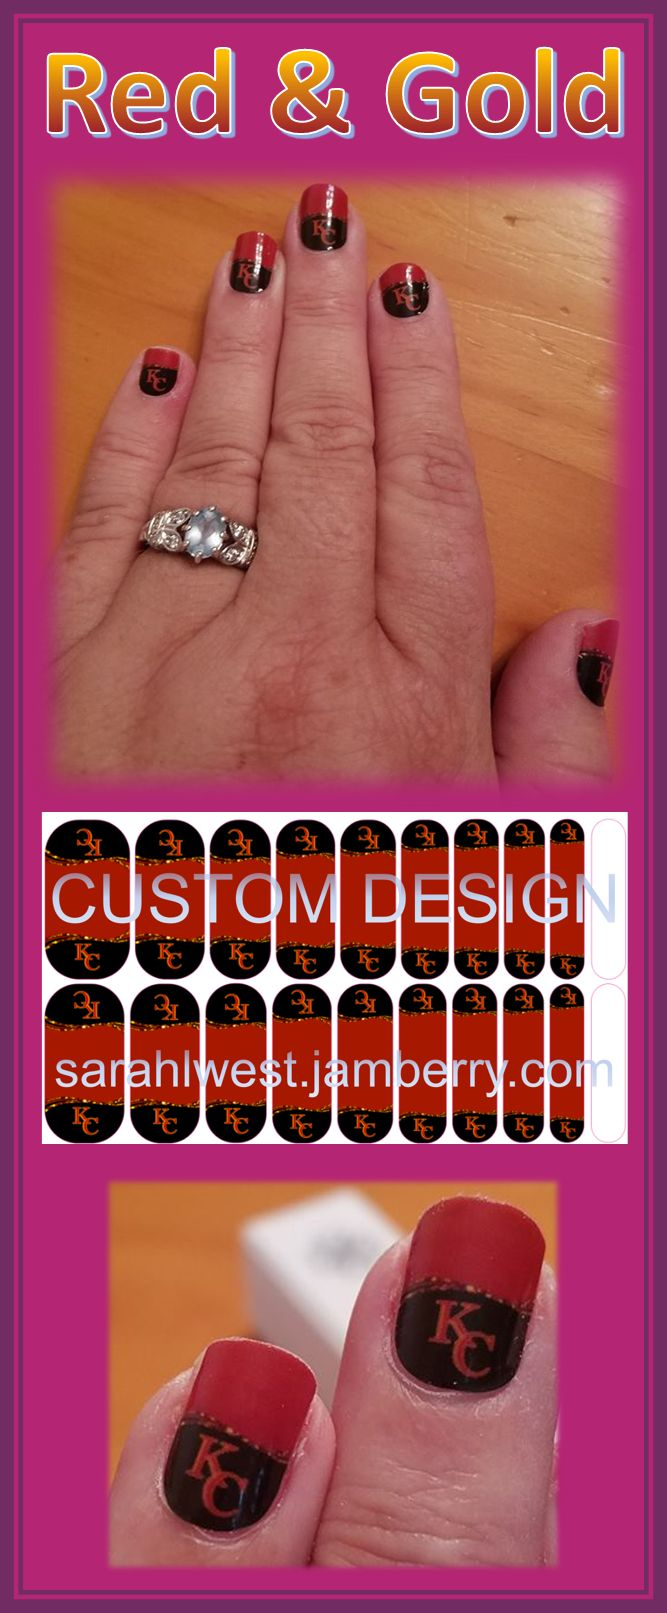 """""""Red & Gold"""" - A Jamberry custom manicure in support of the Kansas City Chiefs Football team!"""